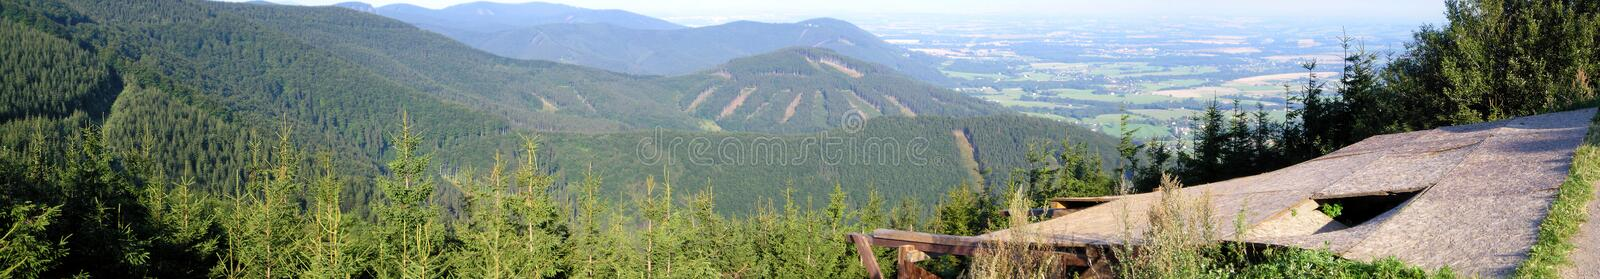 Forested Mountains and a Ramp for Paragliding royalty free stock photo